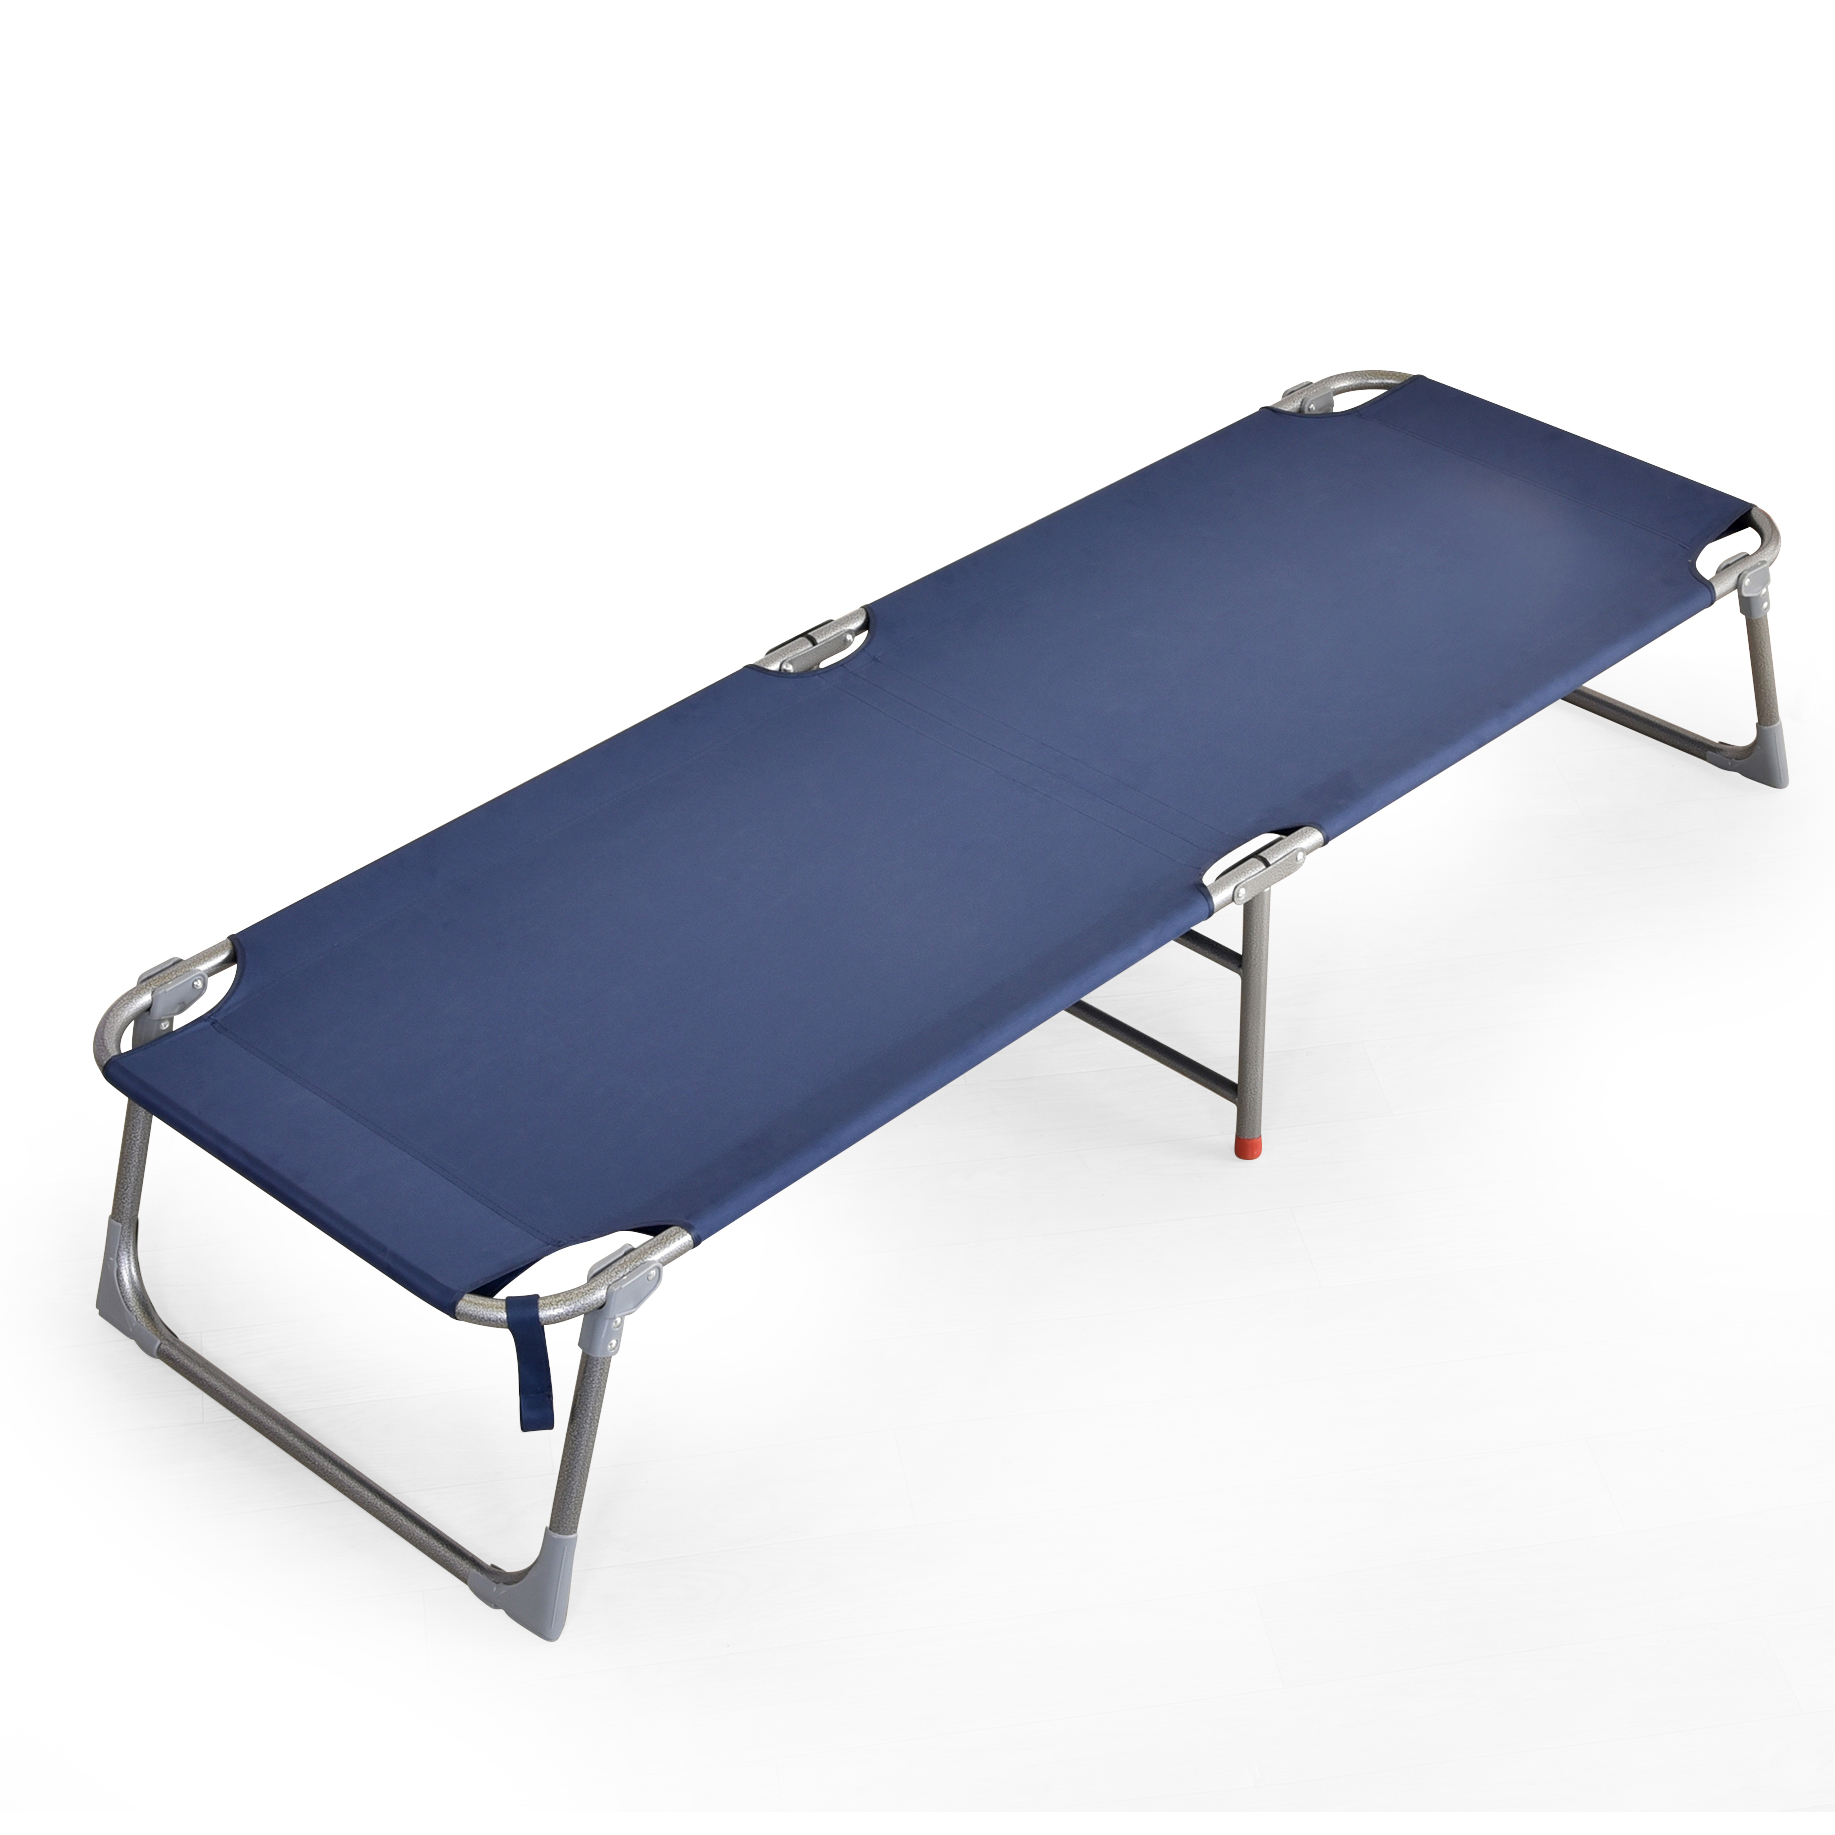 Folding Bed Household Single Bed Portable Nap Bed Reinforcement Simple Bed Canvas Office Bed Lunch Bed Camp Bed